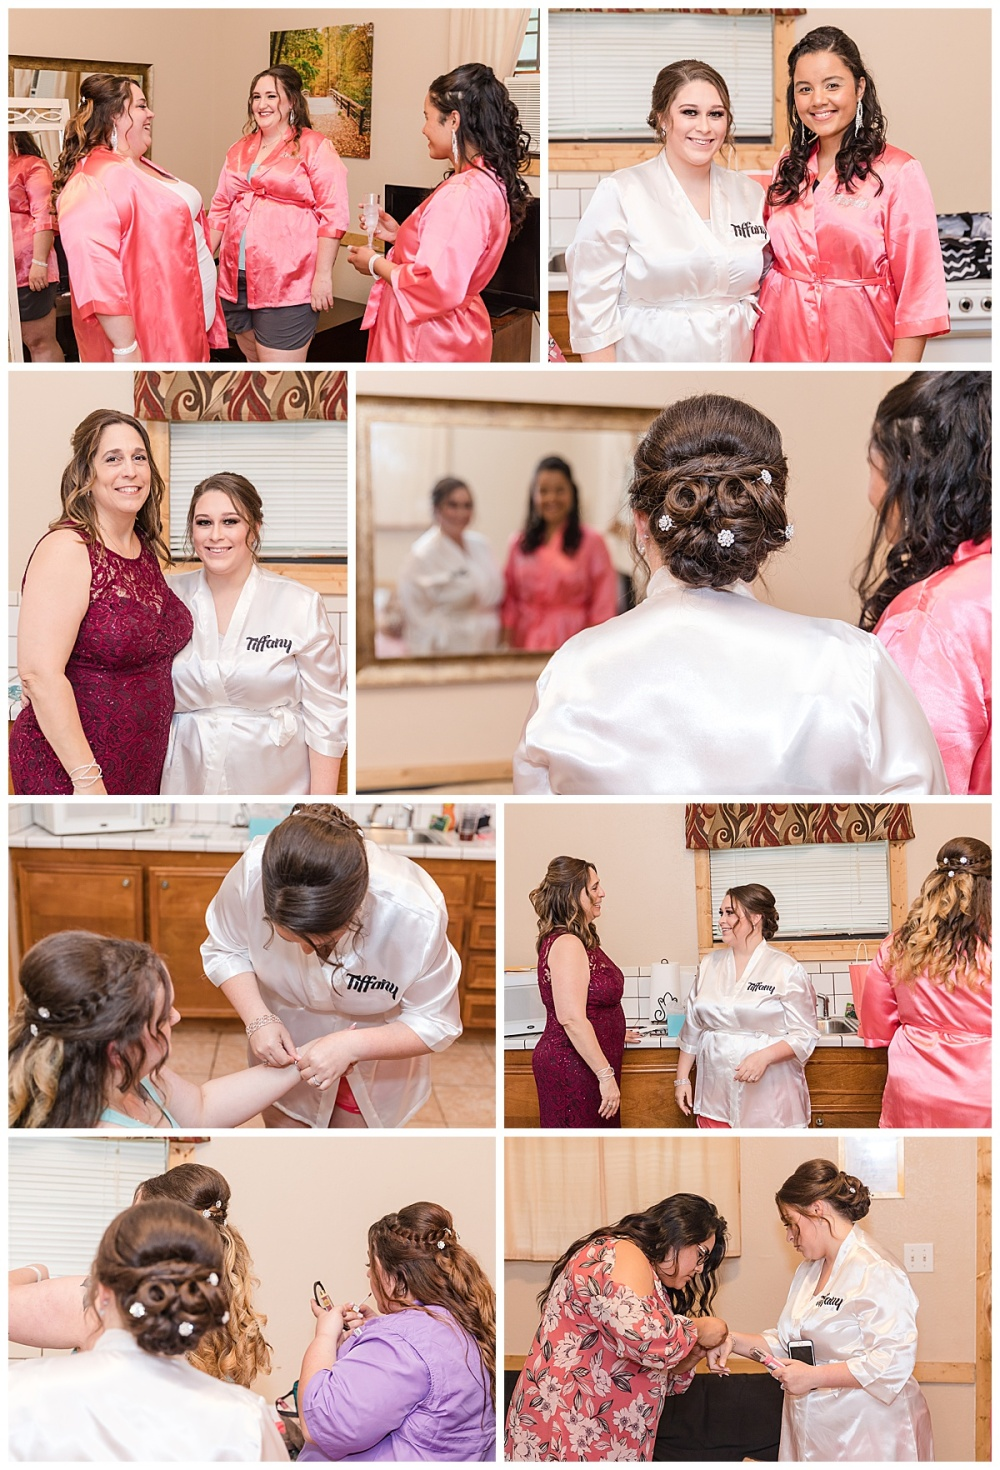 Michael-Tiffany-Wedding-New-Braunfels-Texas-Canyon-Lake-Cabins-and-Cottages-Carly-Barton-Photography_0008.jpg